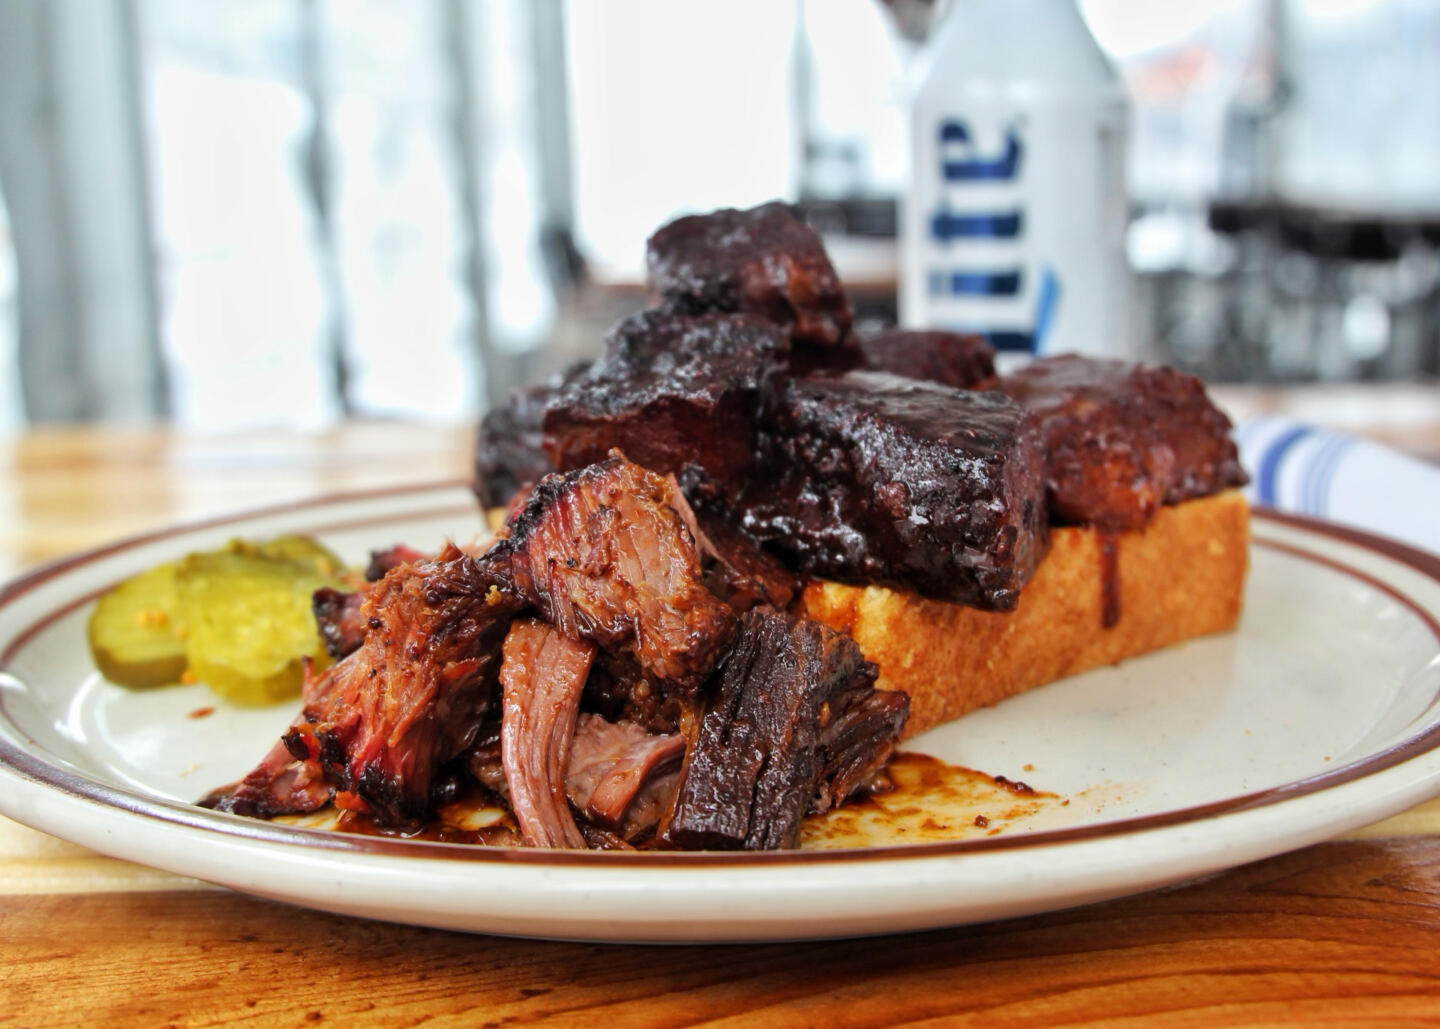 Burnt Ends from Bub City